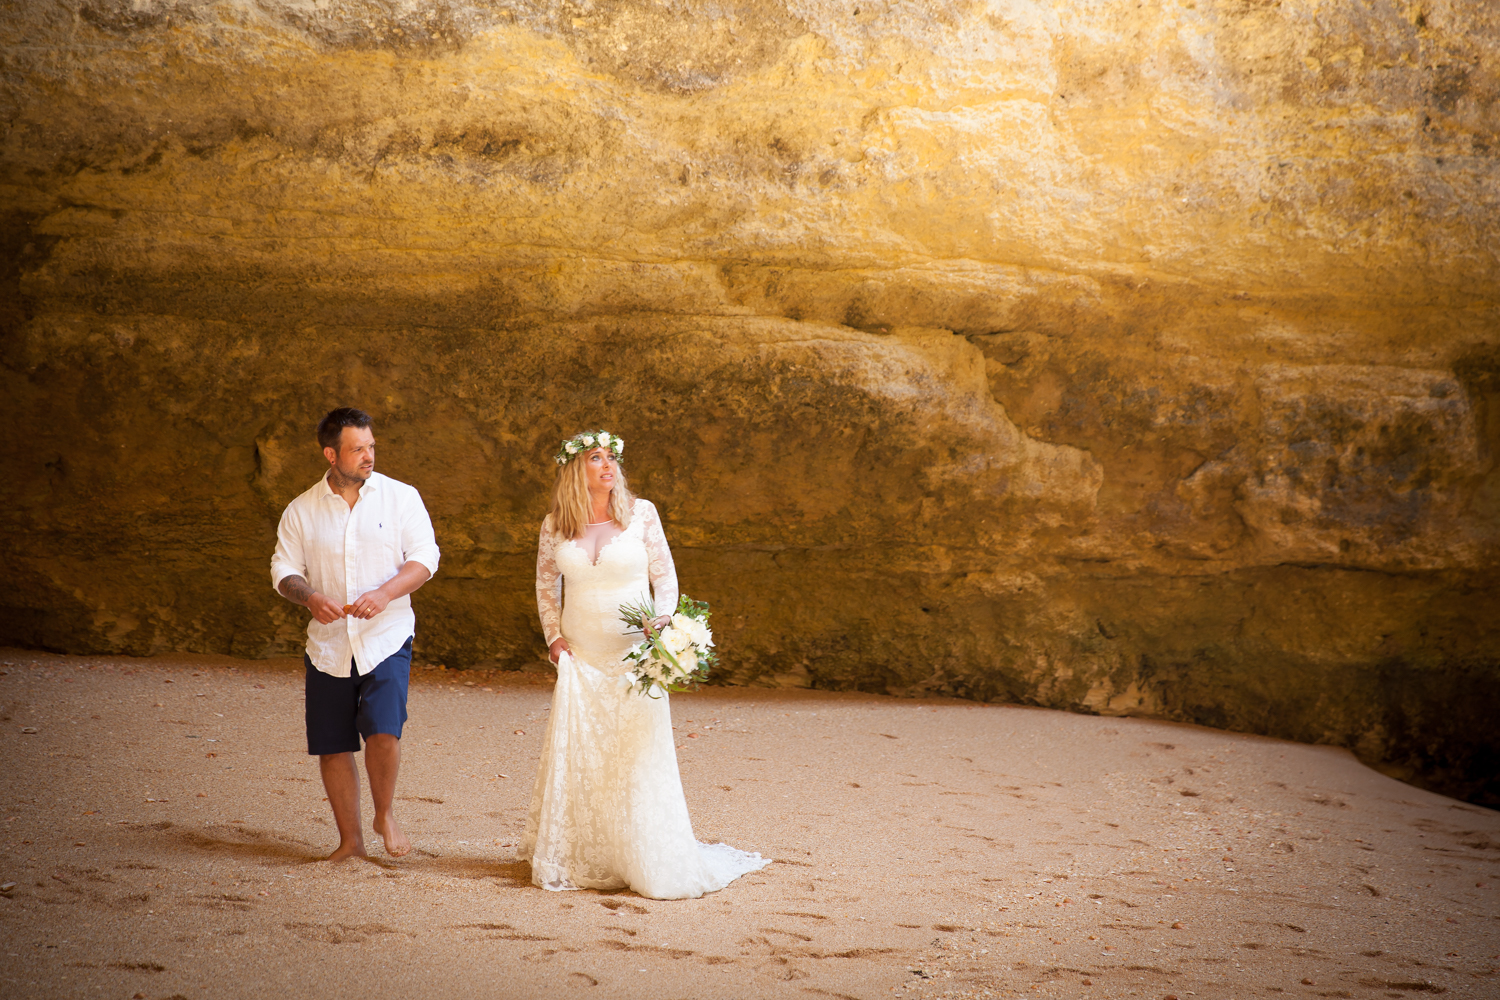 WEDDING_PORTUGAL_NOSOLOAGUA_CAVE_PICTORIAL_BERWICK--9.jpg